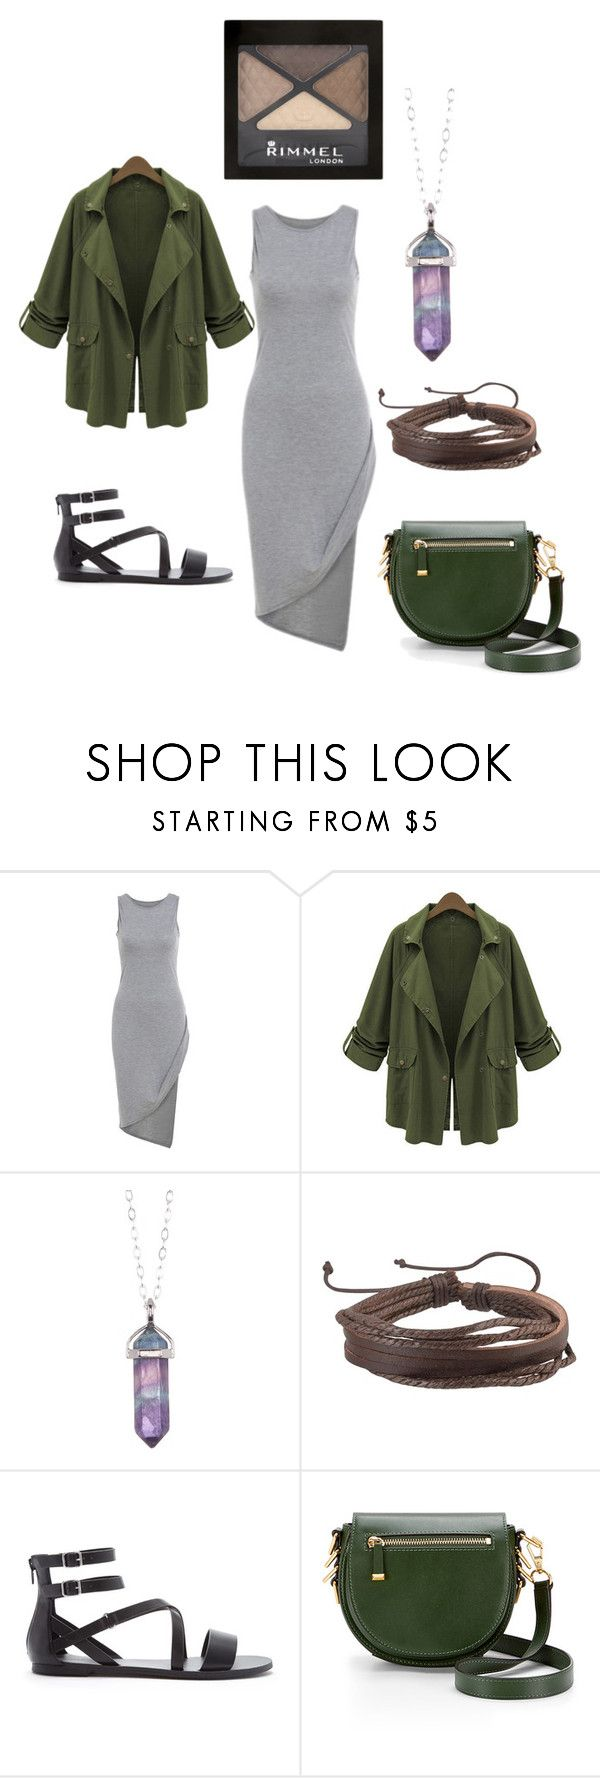 """""""Casual Plus Size Outfit"""" by migalowa on Polyvore featuring Chicnova Fashion, Jami, Zodaca, Forever 21, Rebecca Minkoff, Rimmel, women's clothing, women's fashion, women and female"""